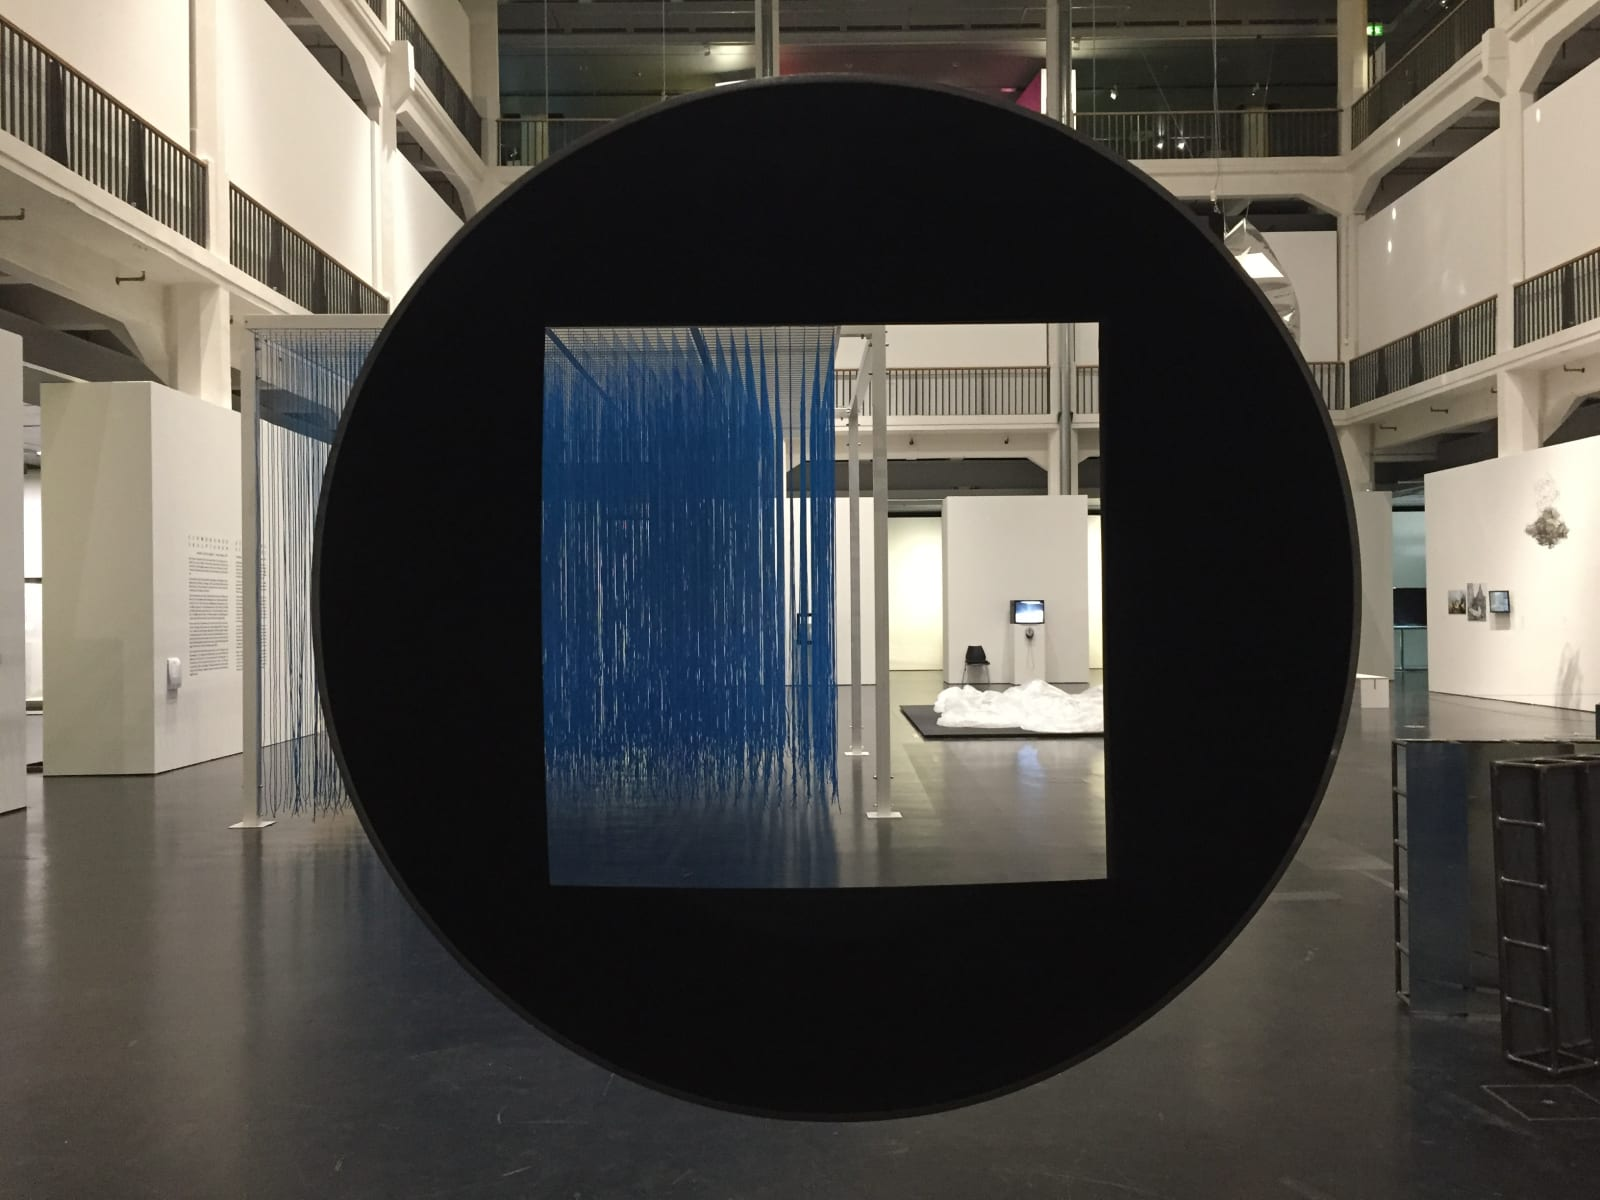 Installation view Negative Space. Trajectories of Sculpture, ZKM Center for Art and Media Karlsruhe (2019) | Photo: Studio Troika